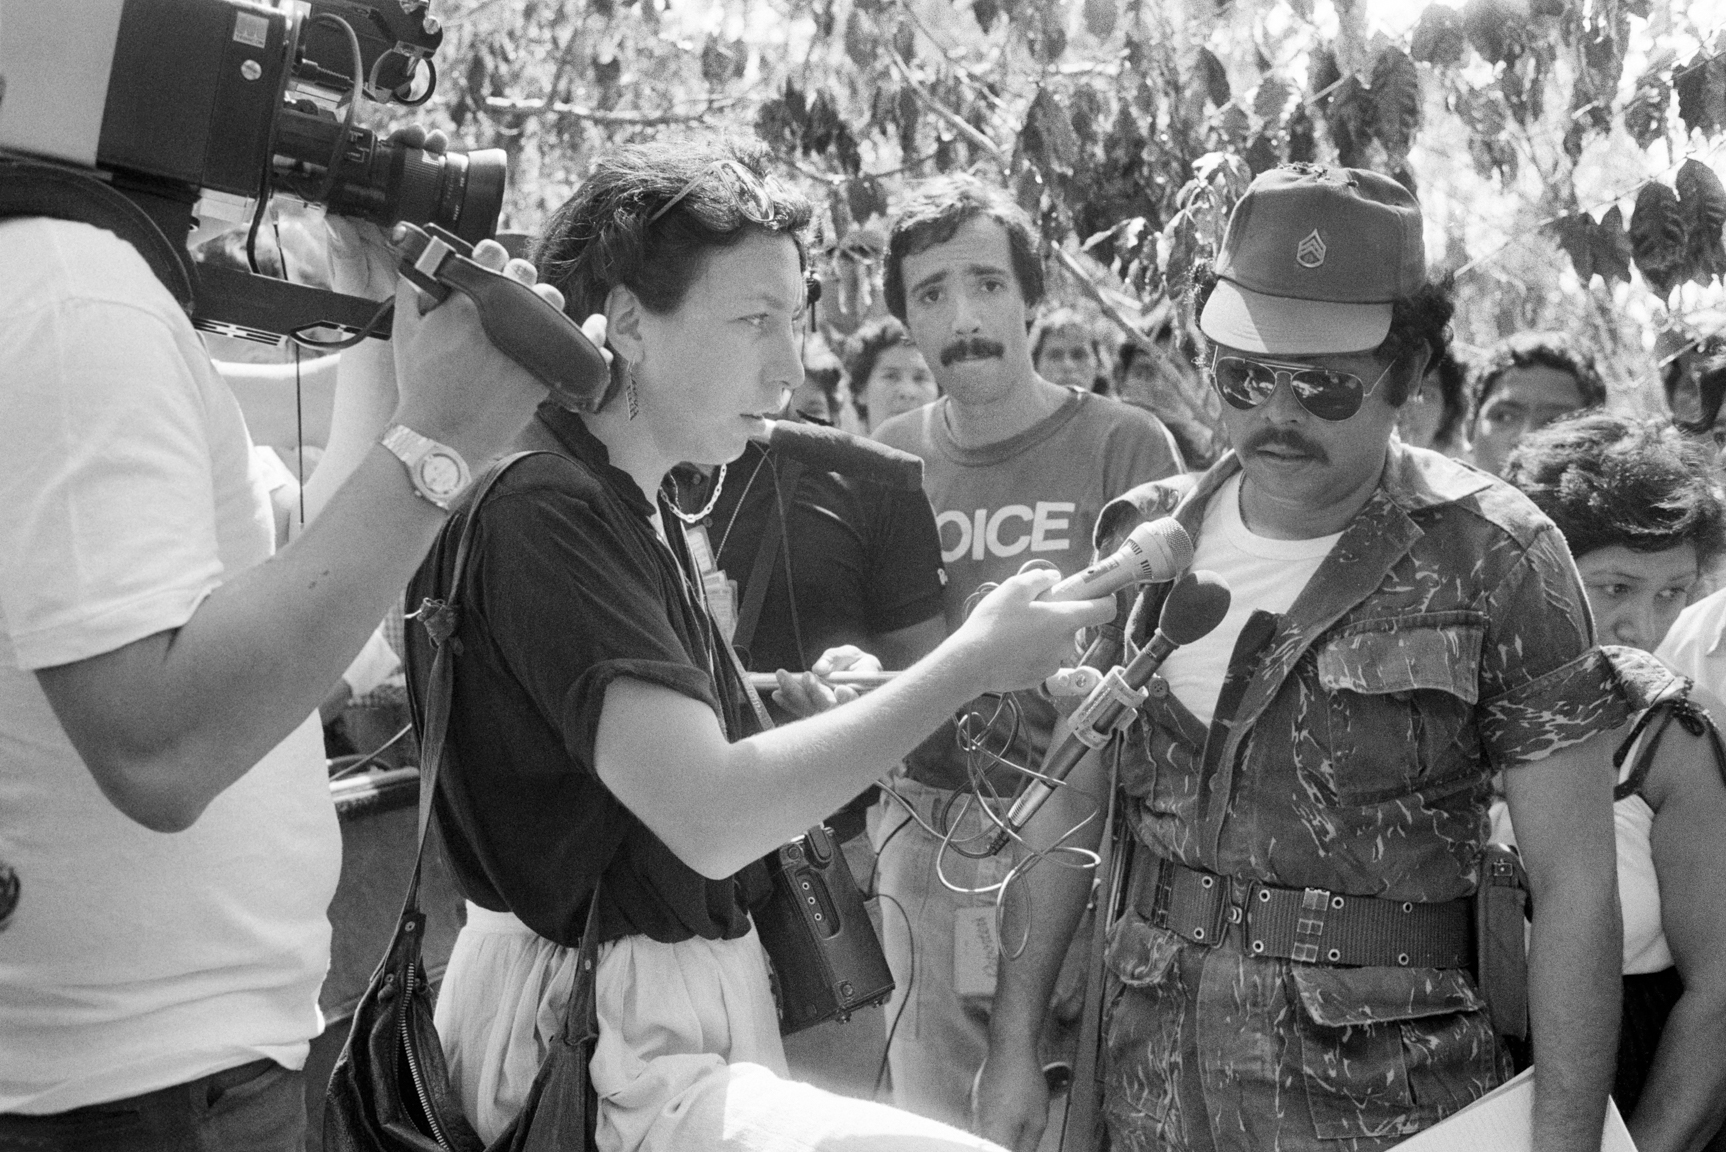 French radio journalist Edith Caron, center, interviews a Salvadoran National Guardsman, right, April 7, 1984, regarding the death of 6 Salvadoran civilians killed by members of a Civil Defense unit and thrown down a nearby well on July 26, 1981 in Los Mangos, Armenia, El Salvador. Eight Civil Defense members were implicated in the killings but no one was convicted.